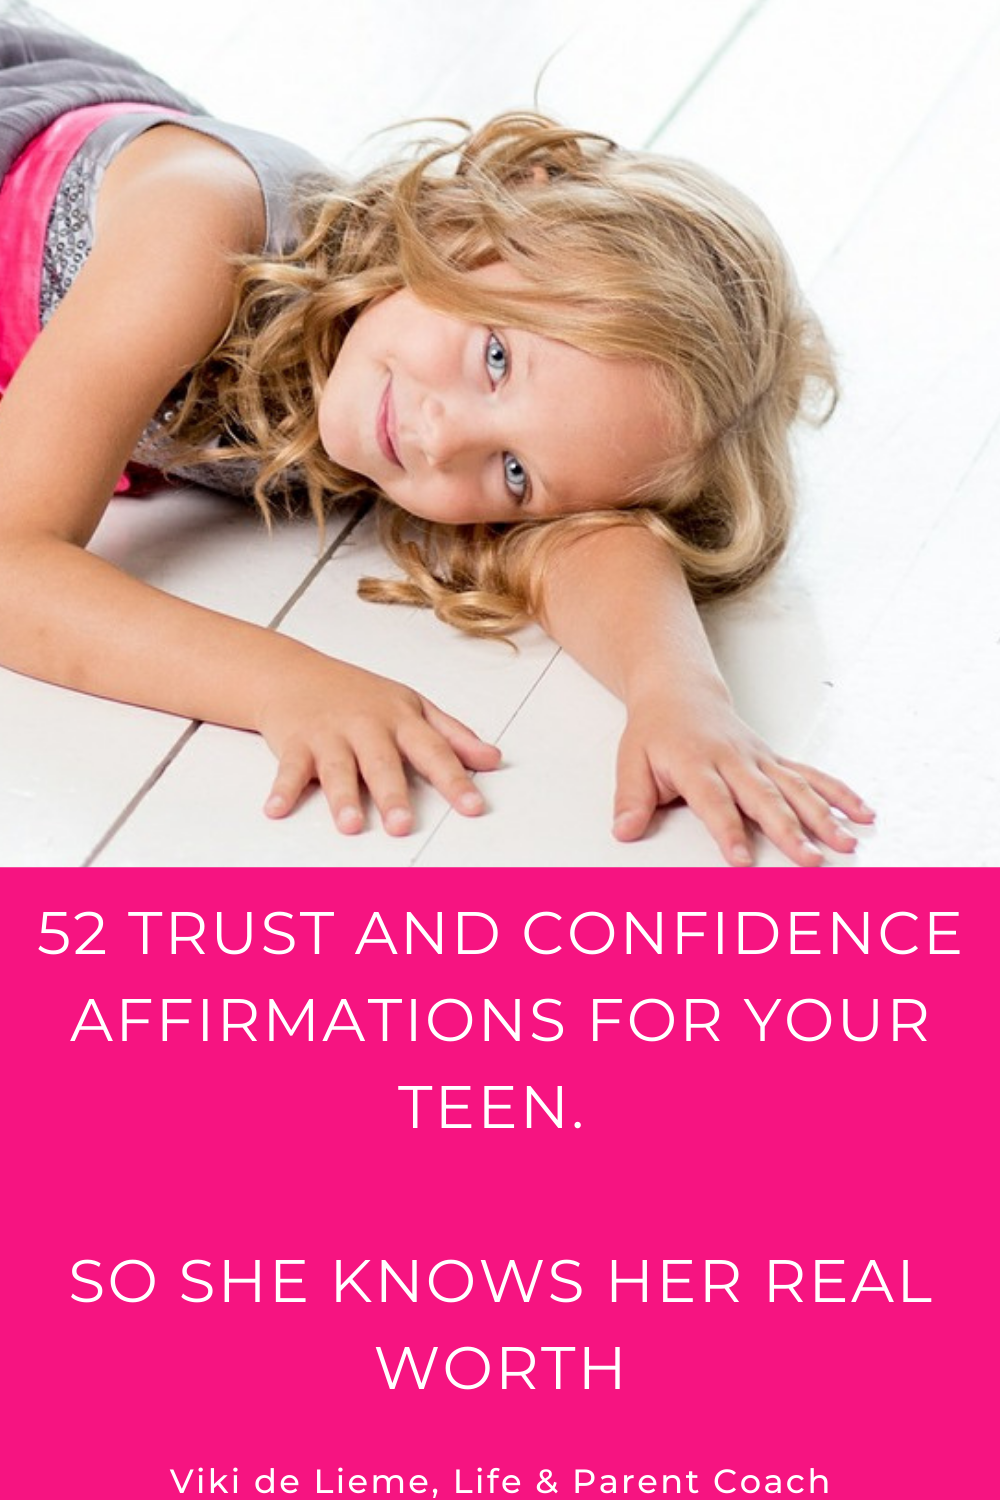 We want to raise empowered children, who know who they are and how know what they are worth. We want to raise a child who would know how to protect herself when someone or something doesn't meet her needs. We want to raise a future leader, but we have no idea how as we weren't parented this way. In this article you would find 52 trust and confidence #affirmations to share with your child every day #affirmationsforkids #mindfulparenting #peacefulparenting #gentleparenting #raisinghappykids #mindfulness #mindfulinoneday #happykids #parenting #parentinghelp #meditationsforkids